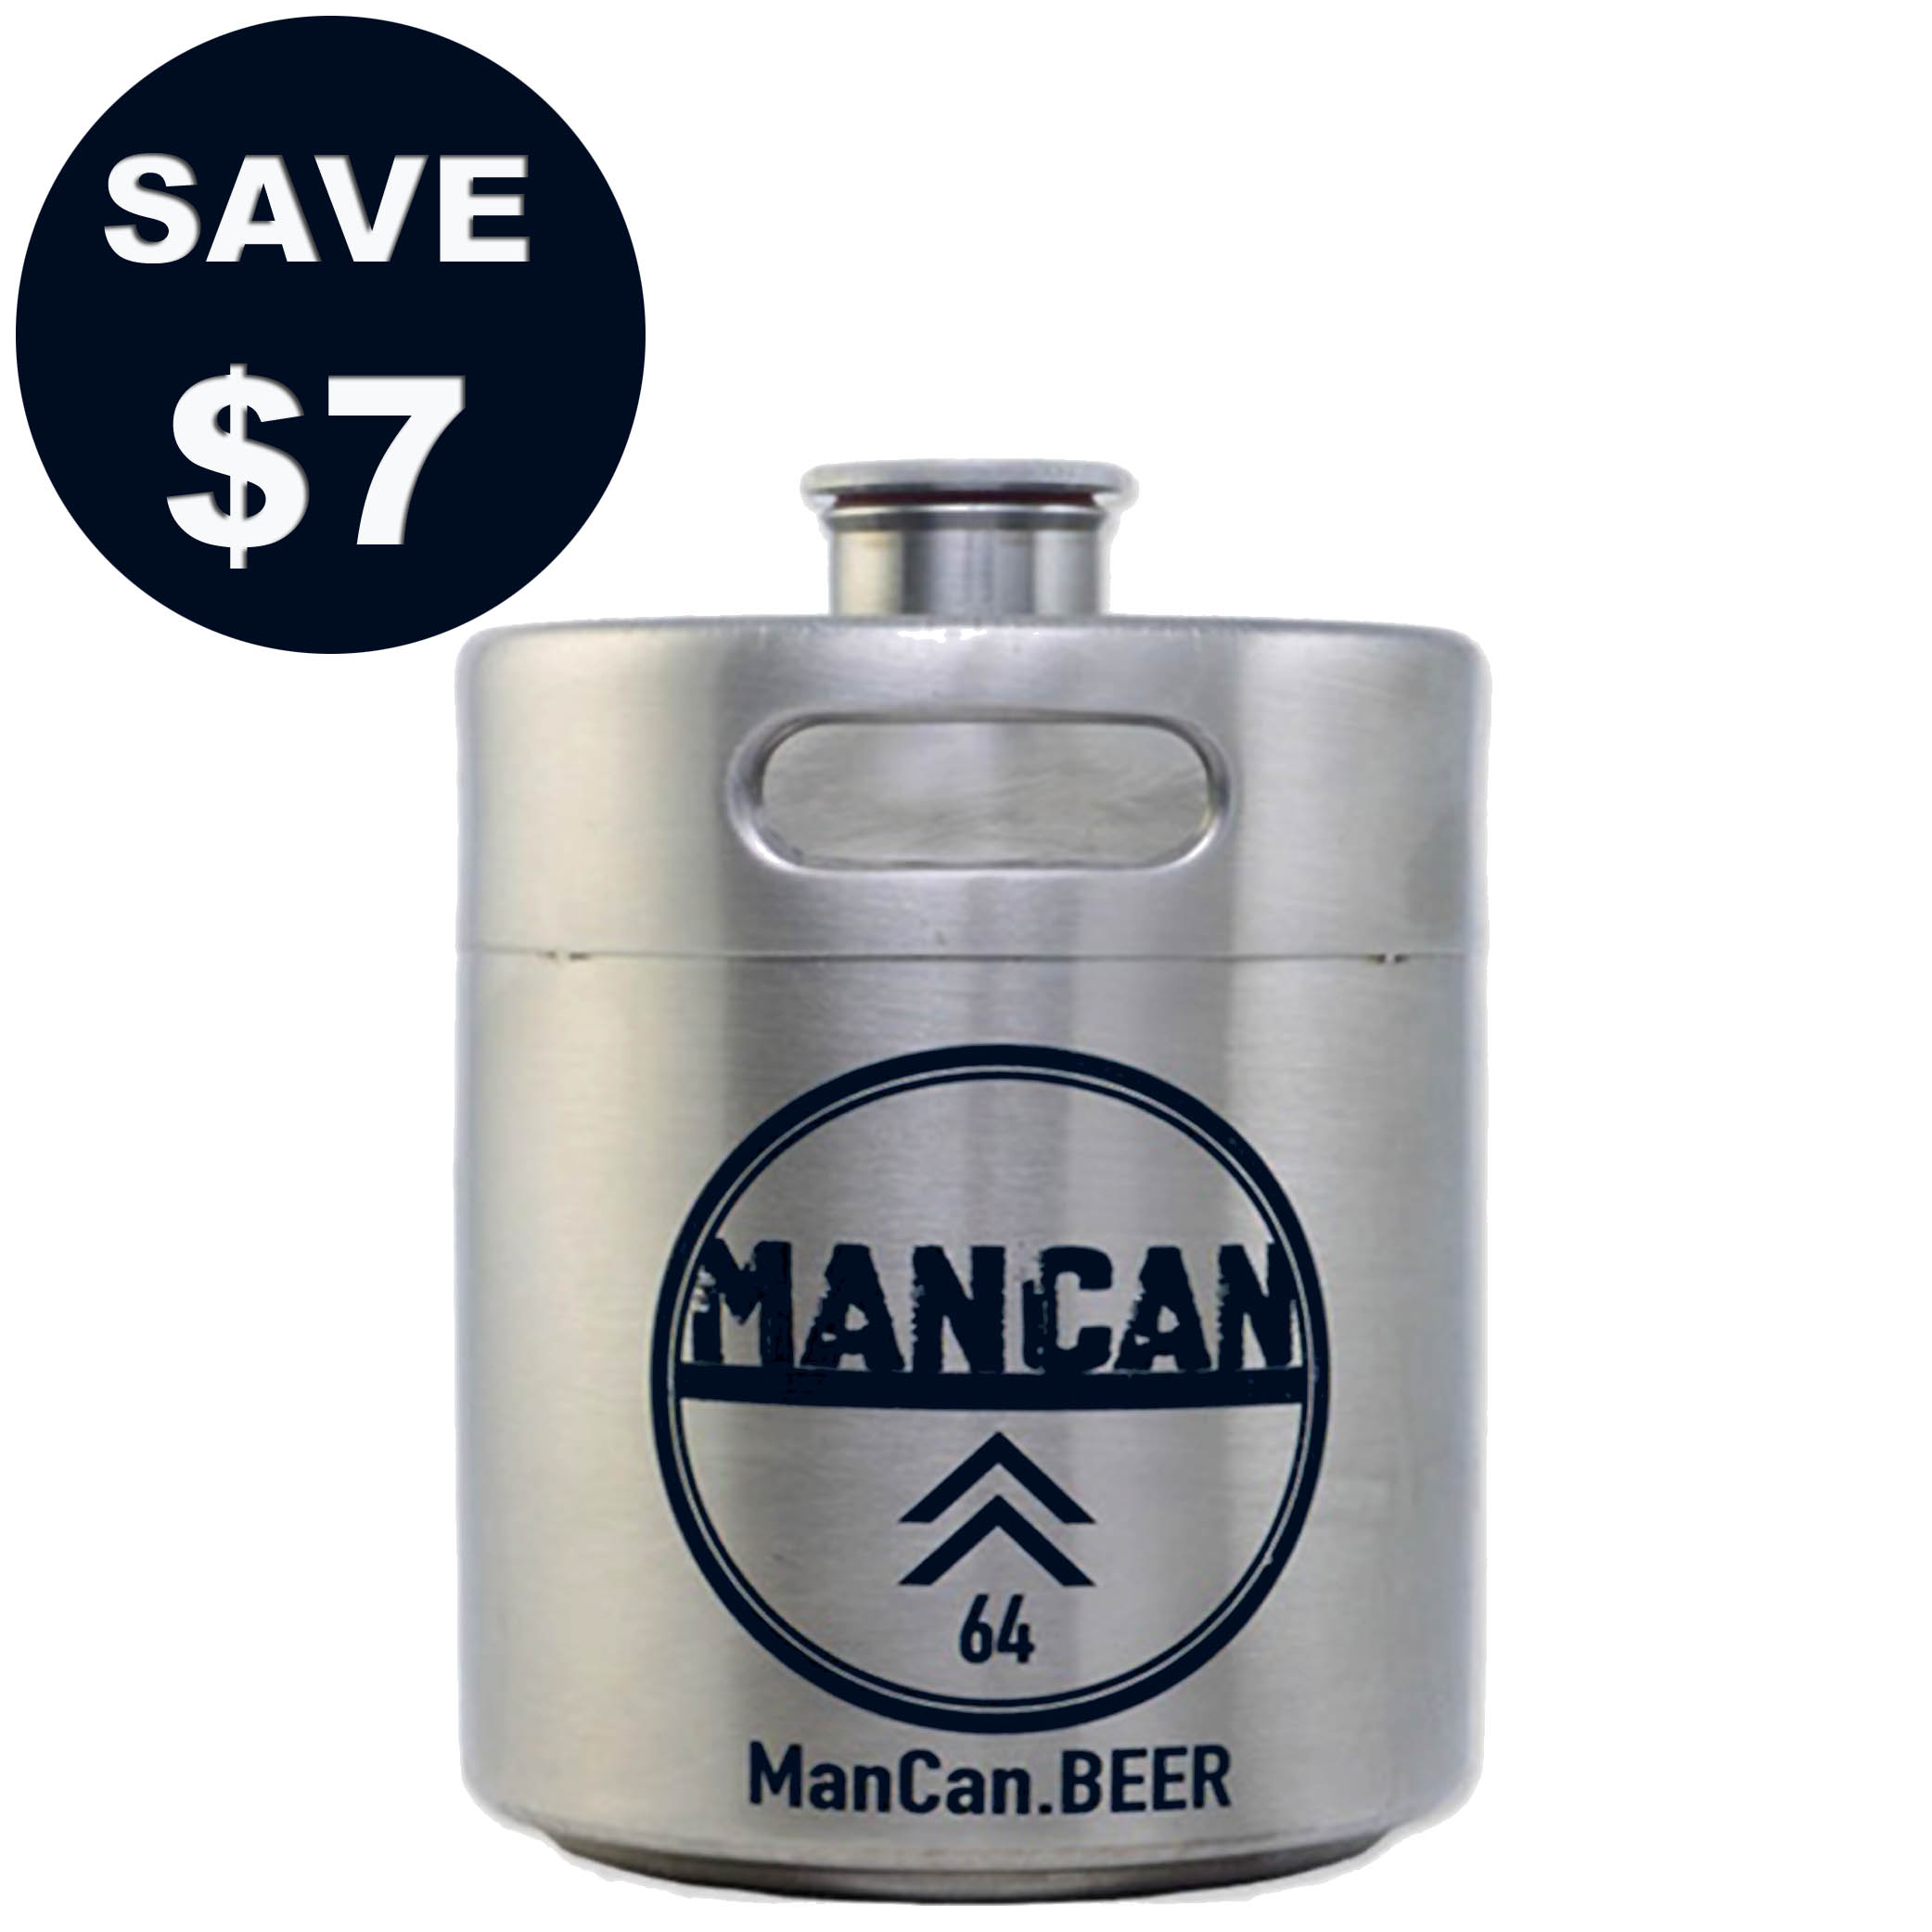 Home Brewer Promo Code for Save $7 on a Stainless Steel Mini-Keg Growler with this More Beer Coupon Coupon Code